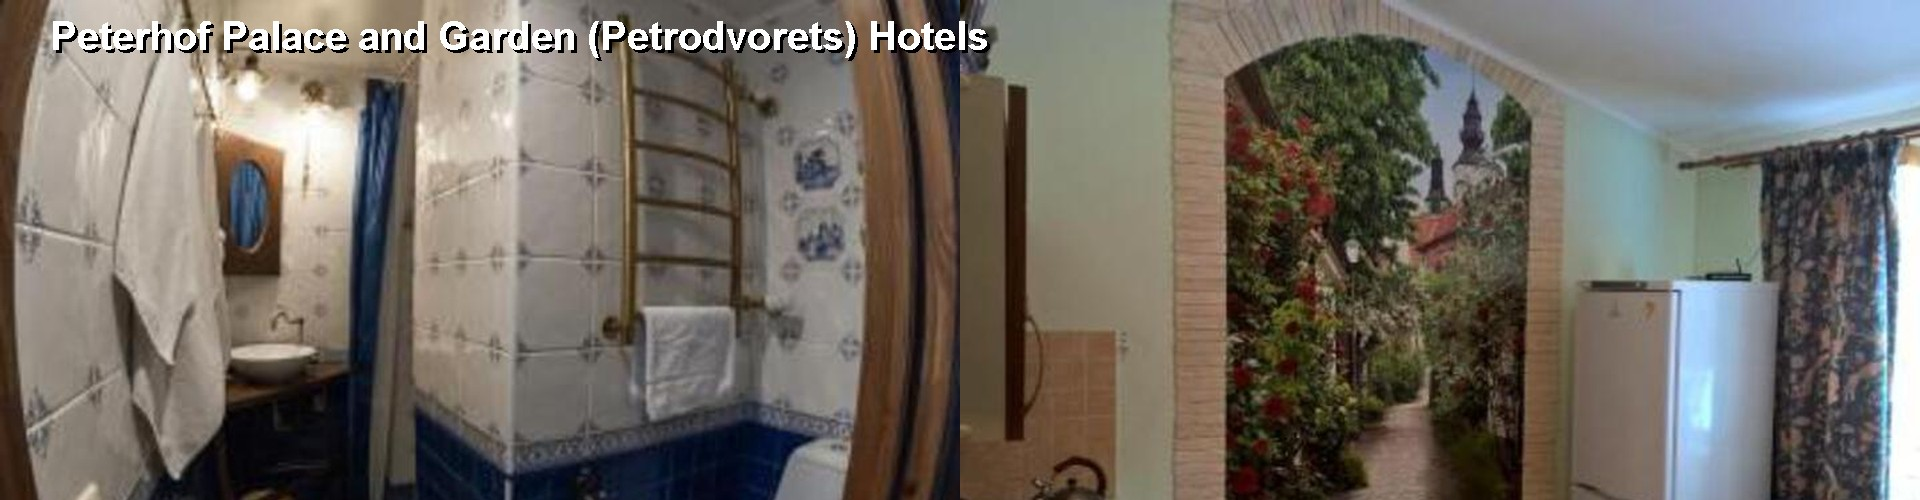 5 Best Hotels near Peterhof Palace and Garden (Petrodvorets)